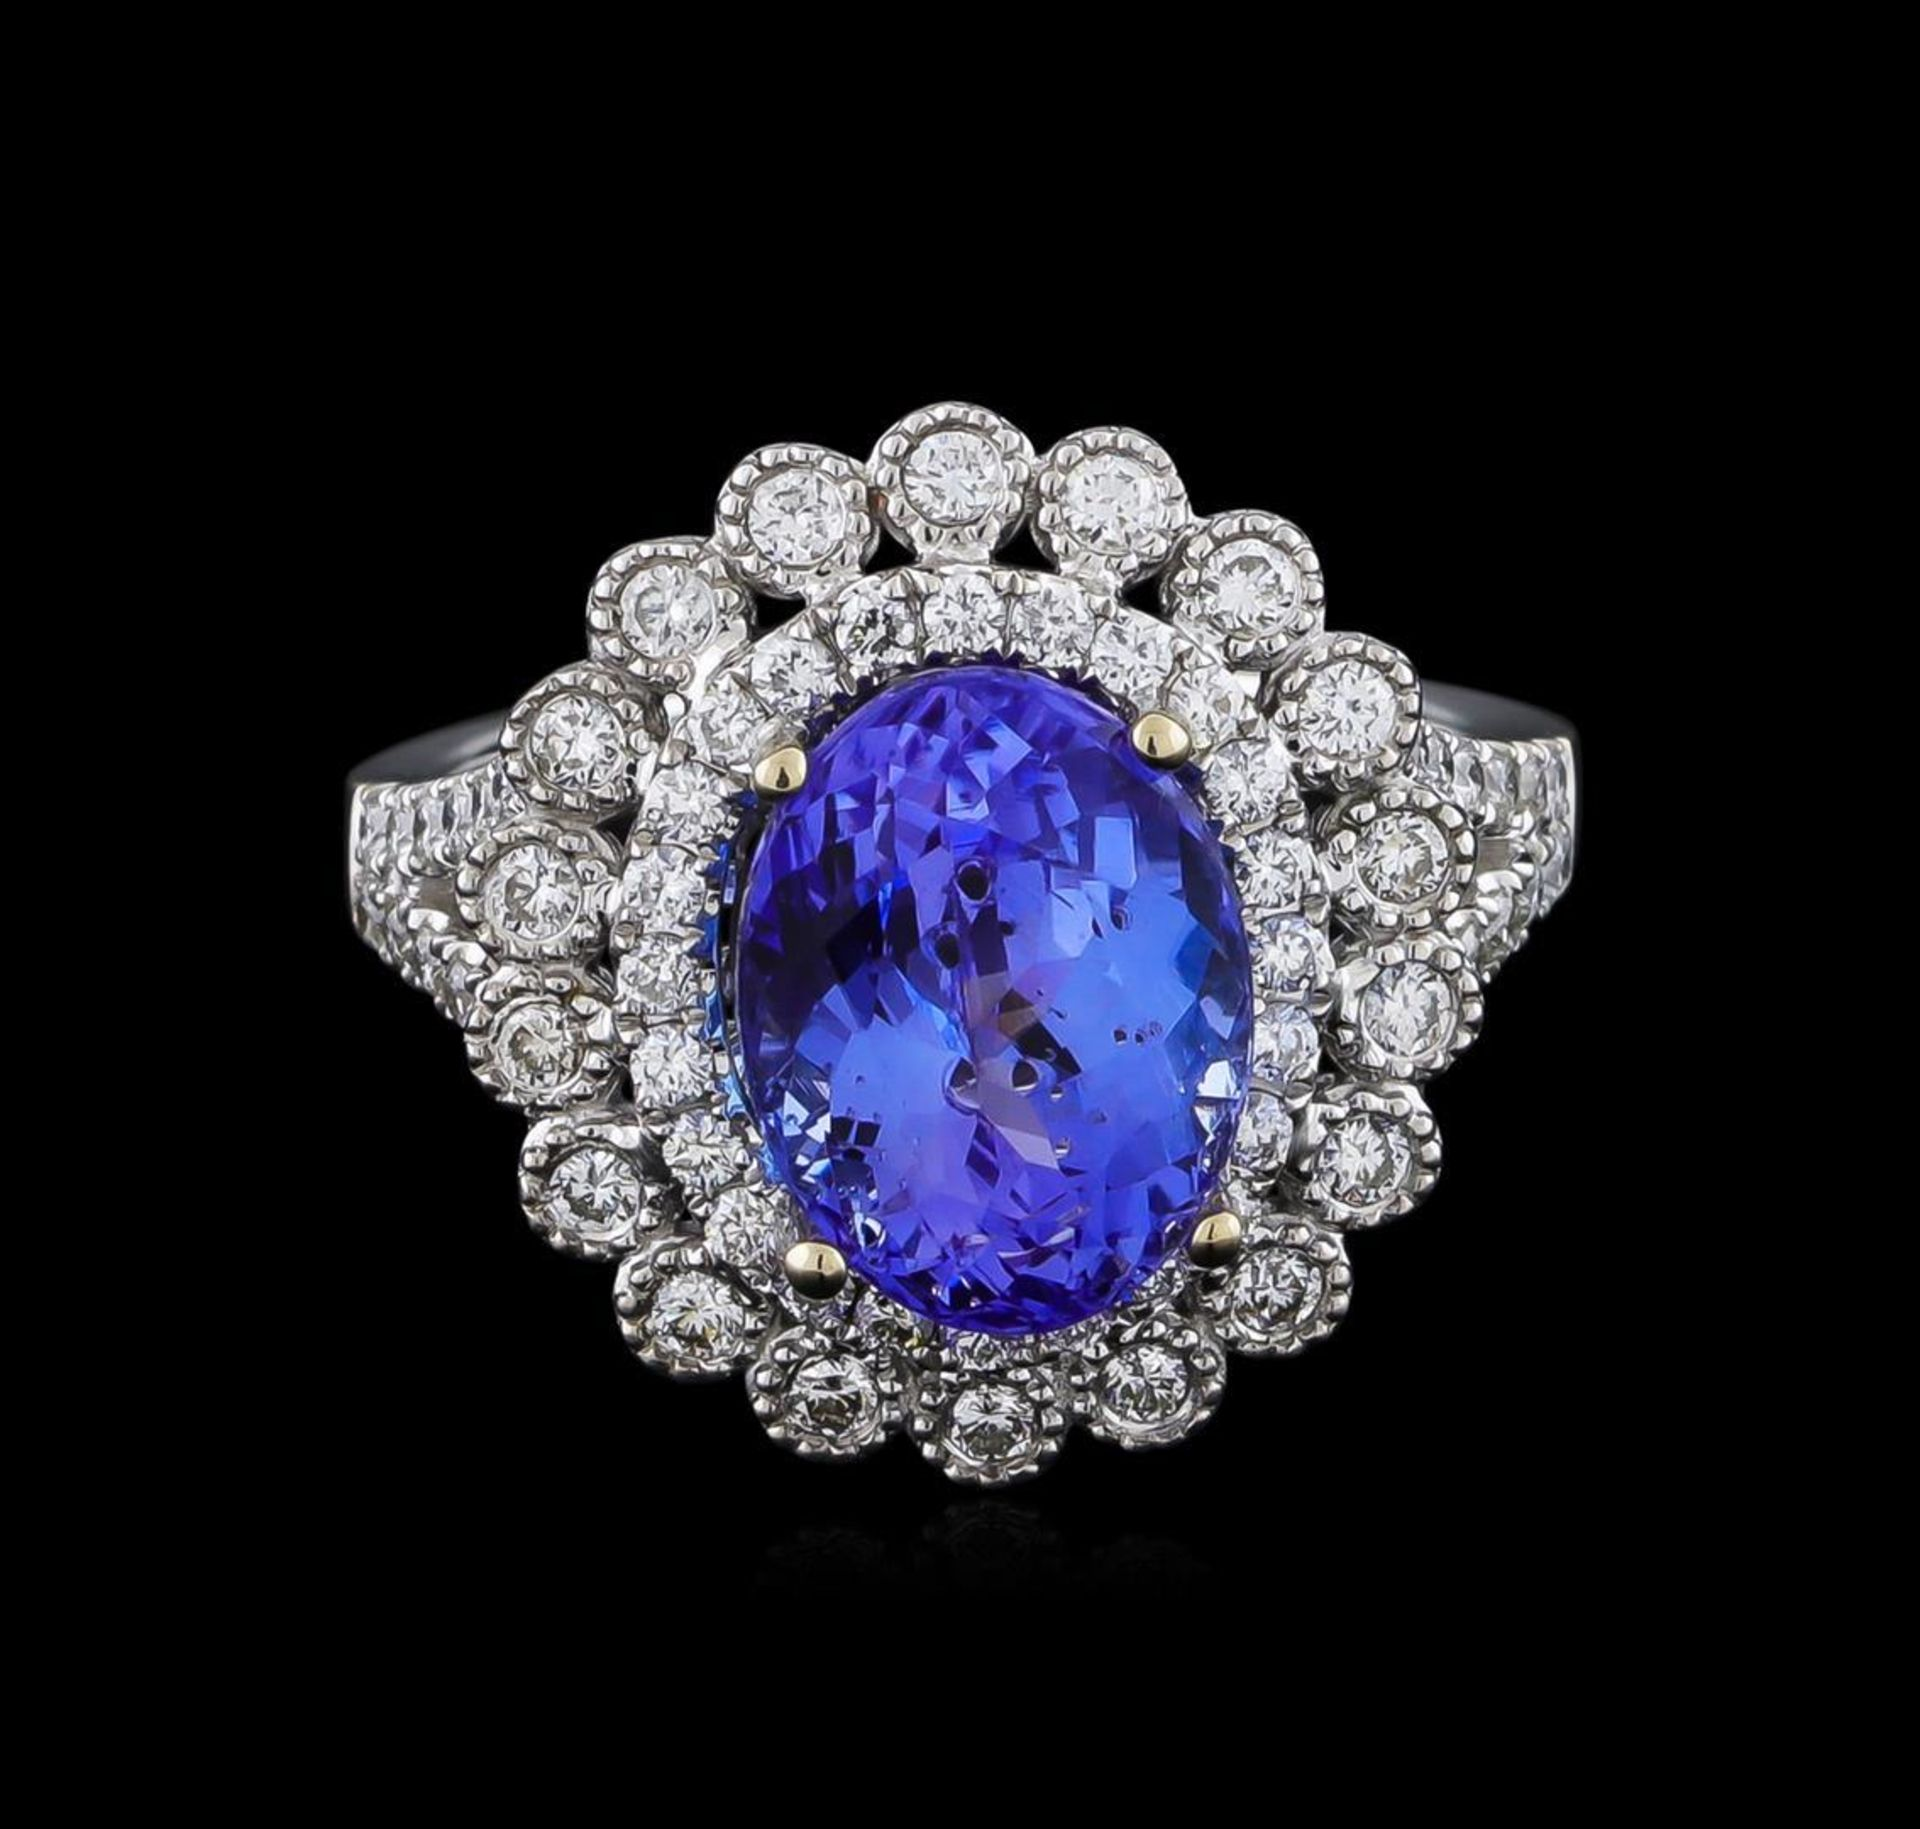 18KT White Gold 3.95 ctw Tanzanite and Diamond Ring - Image 2 of 5